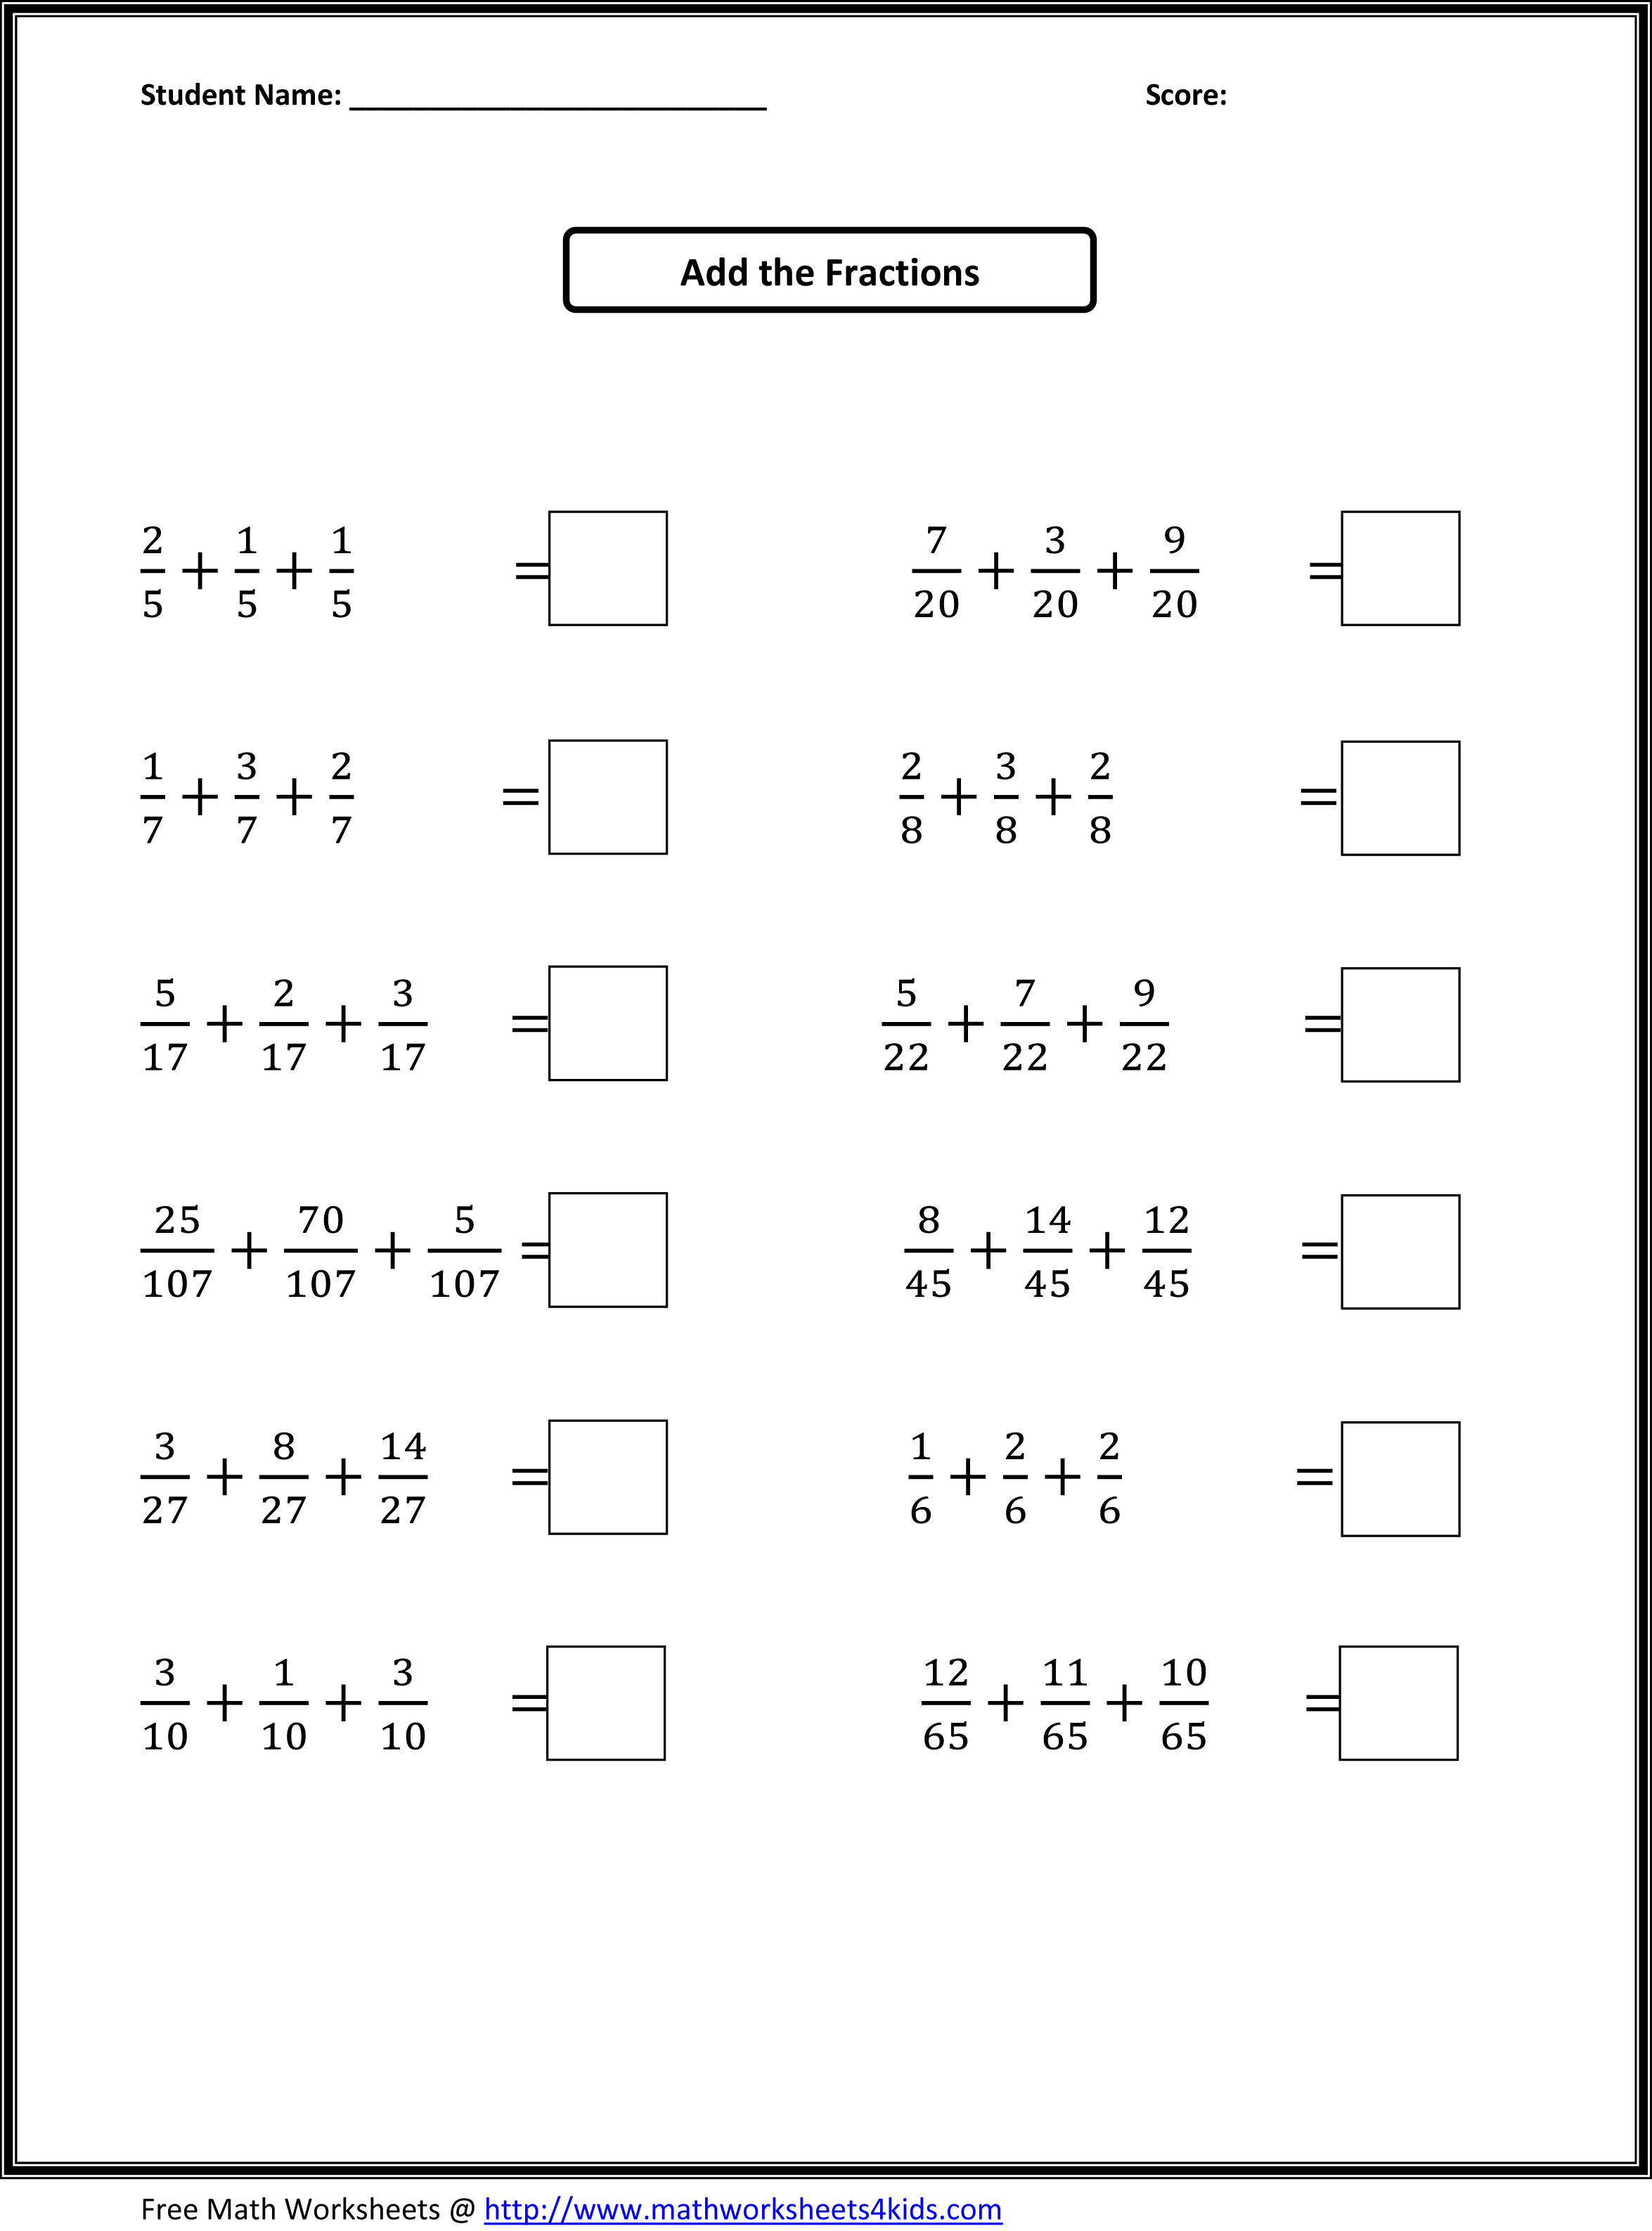 worksheet Printable 4th Grade Worksheets 4th grade math worksheets printable abitlikethis also algebra 1 8th on all operations